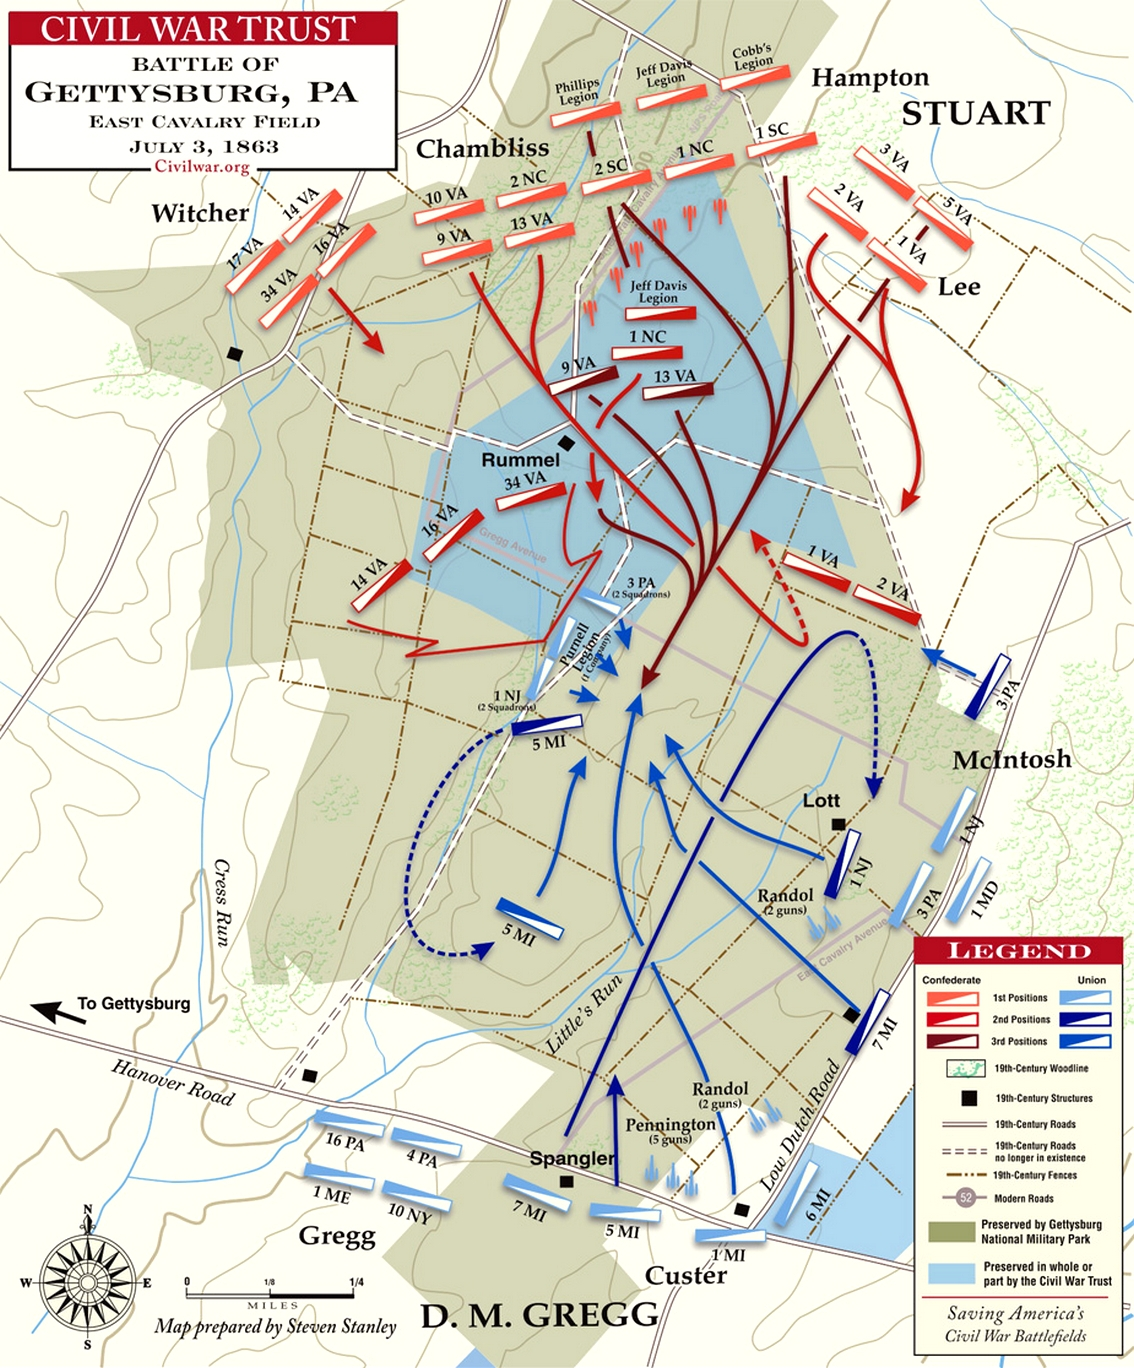 East Cavalry Field, Battle of Gettysburg Map.jpg